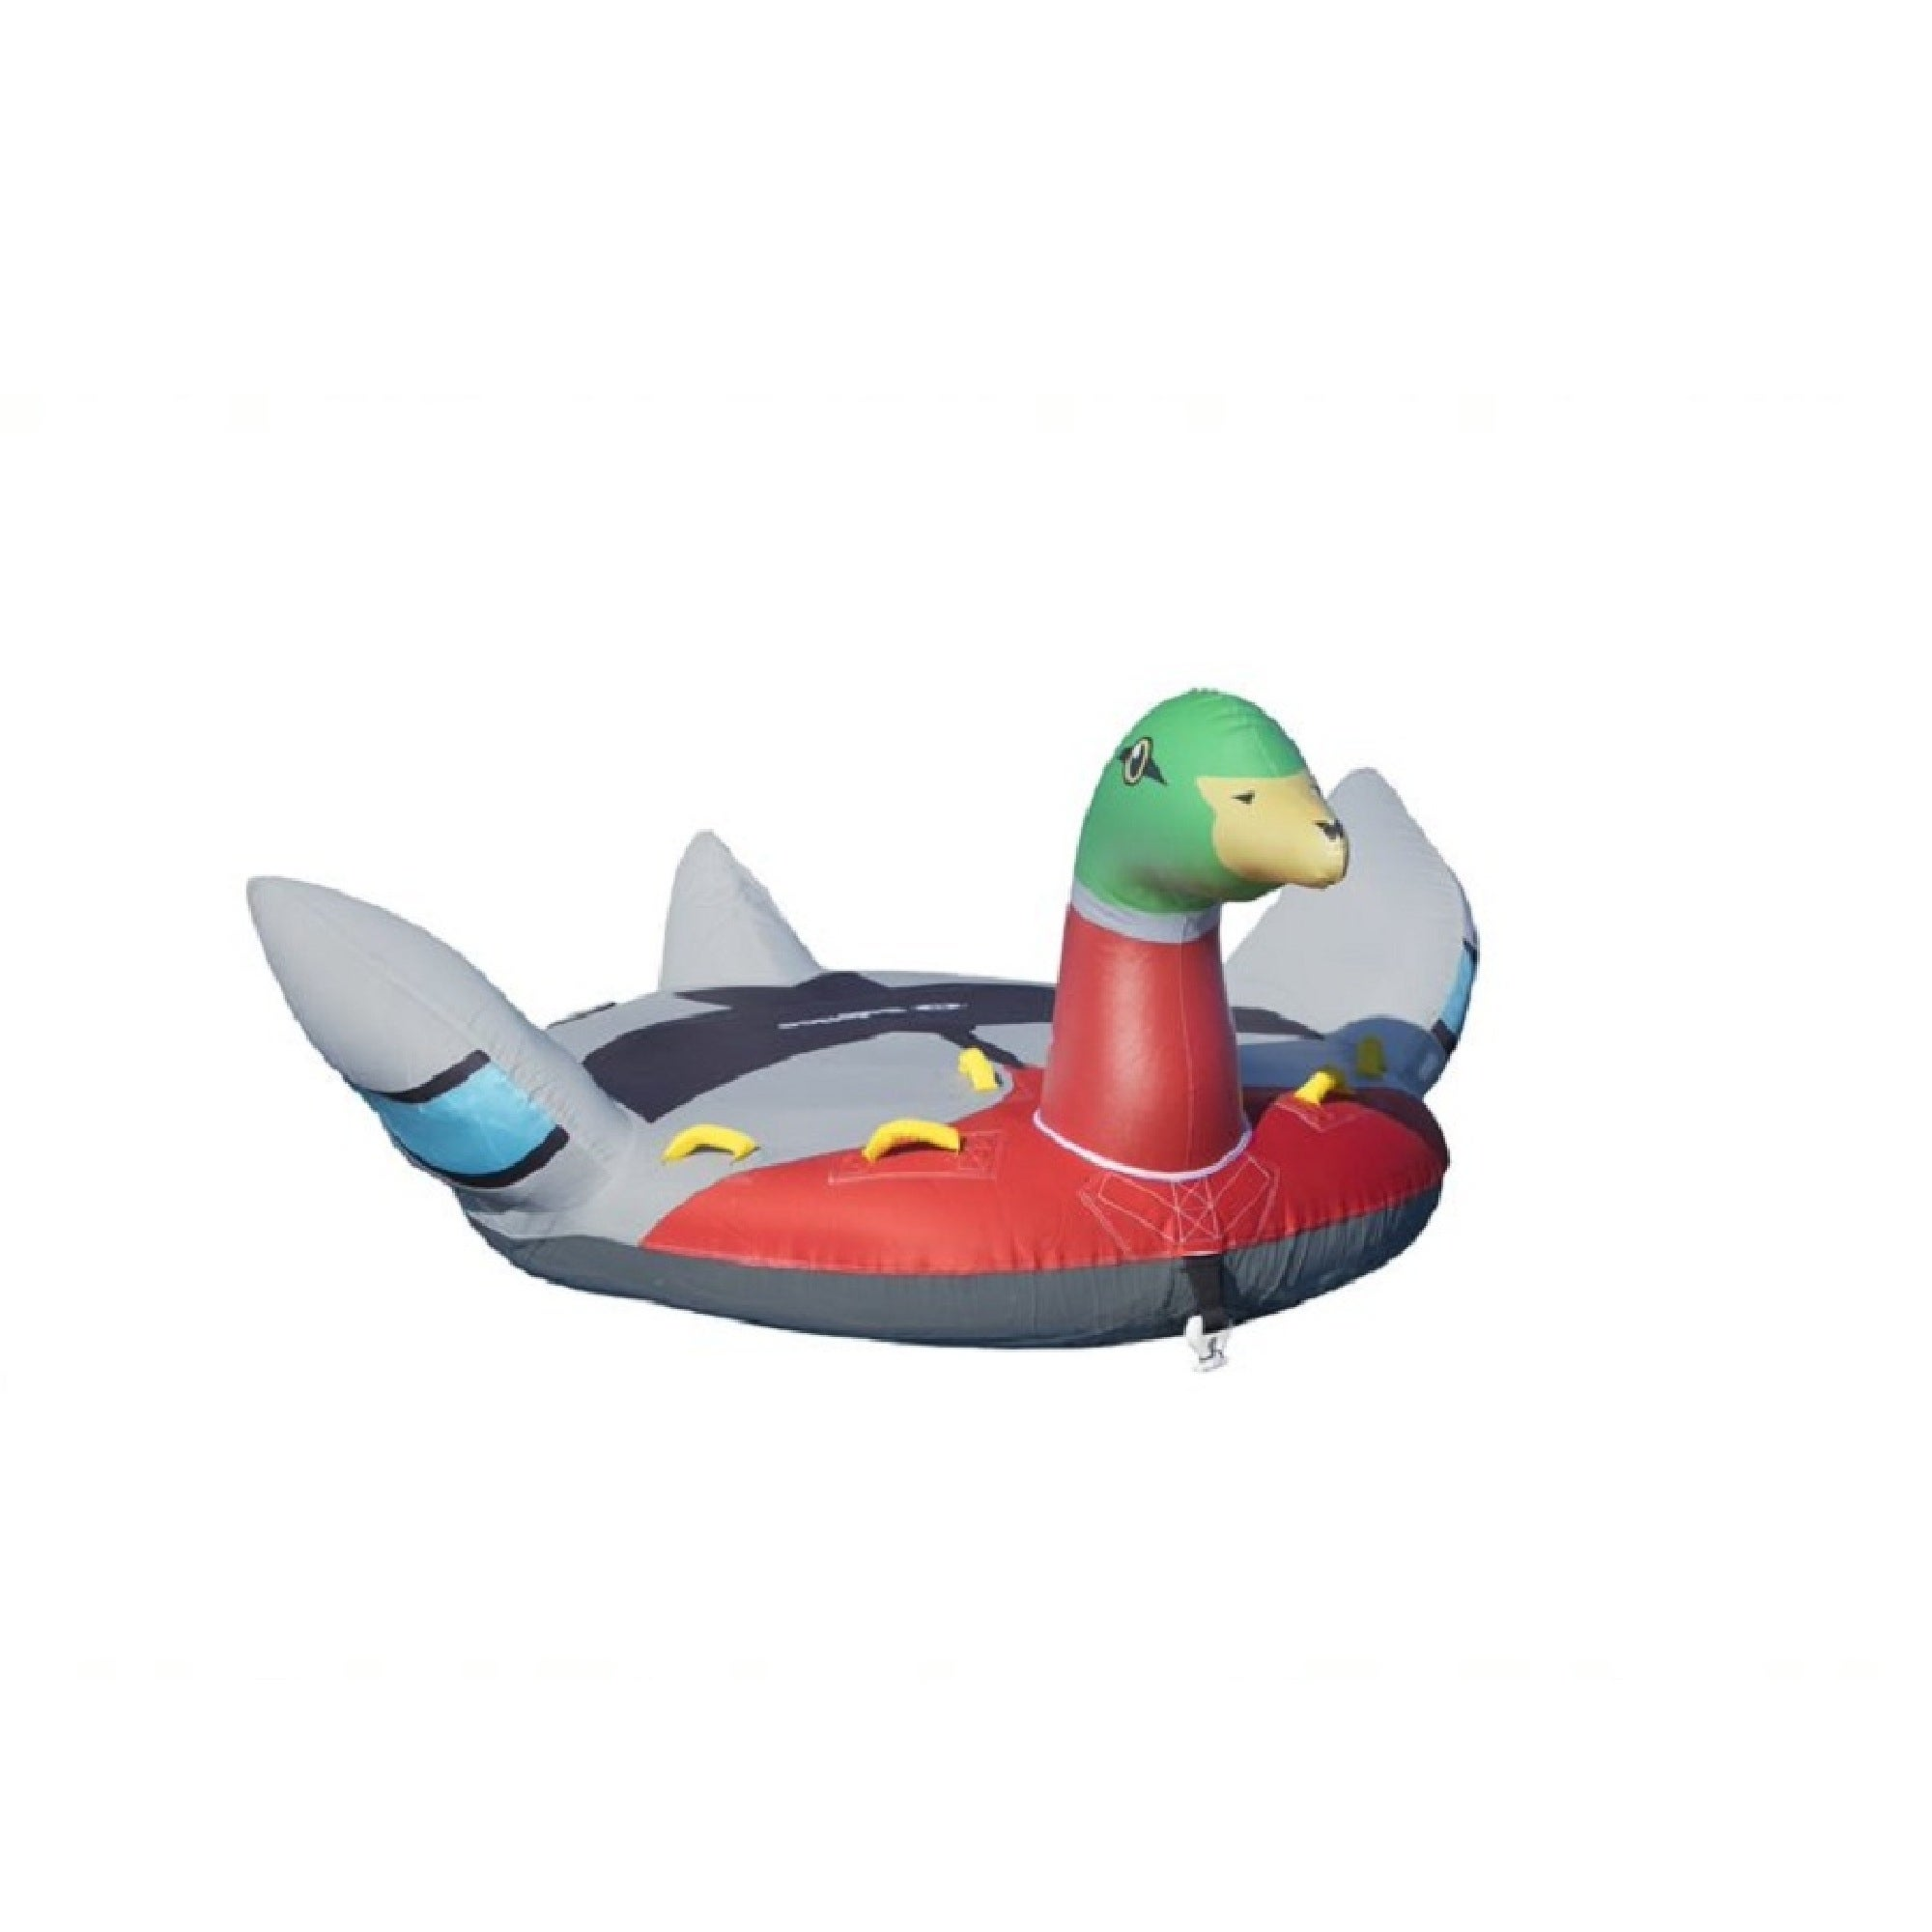 """86"""" Inflatable Lay-on Decoy Duck Towable Float - Grey - N/A thumbnail"""